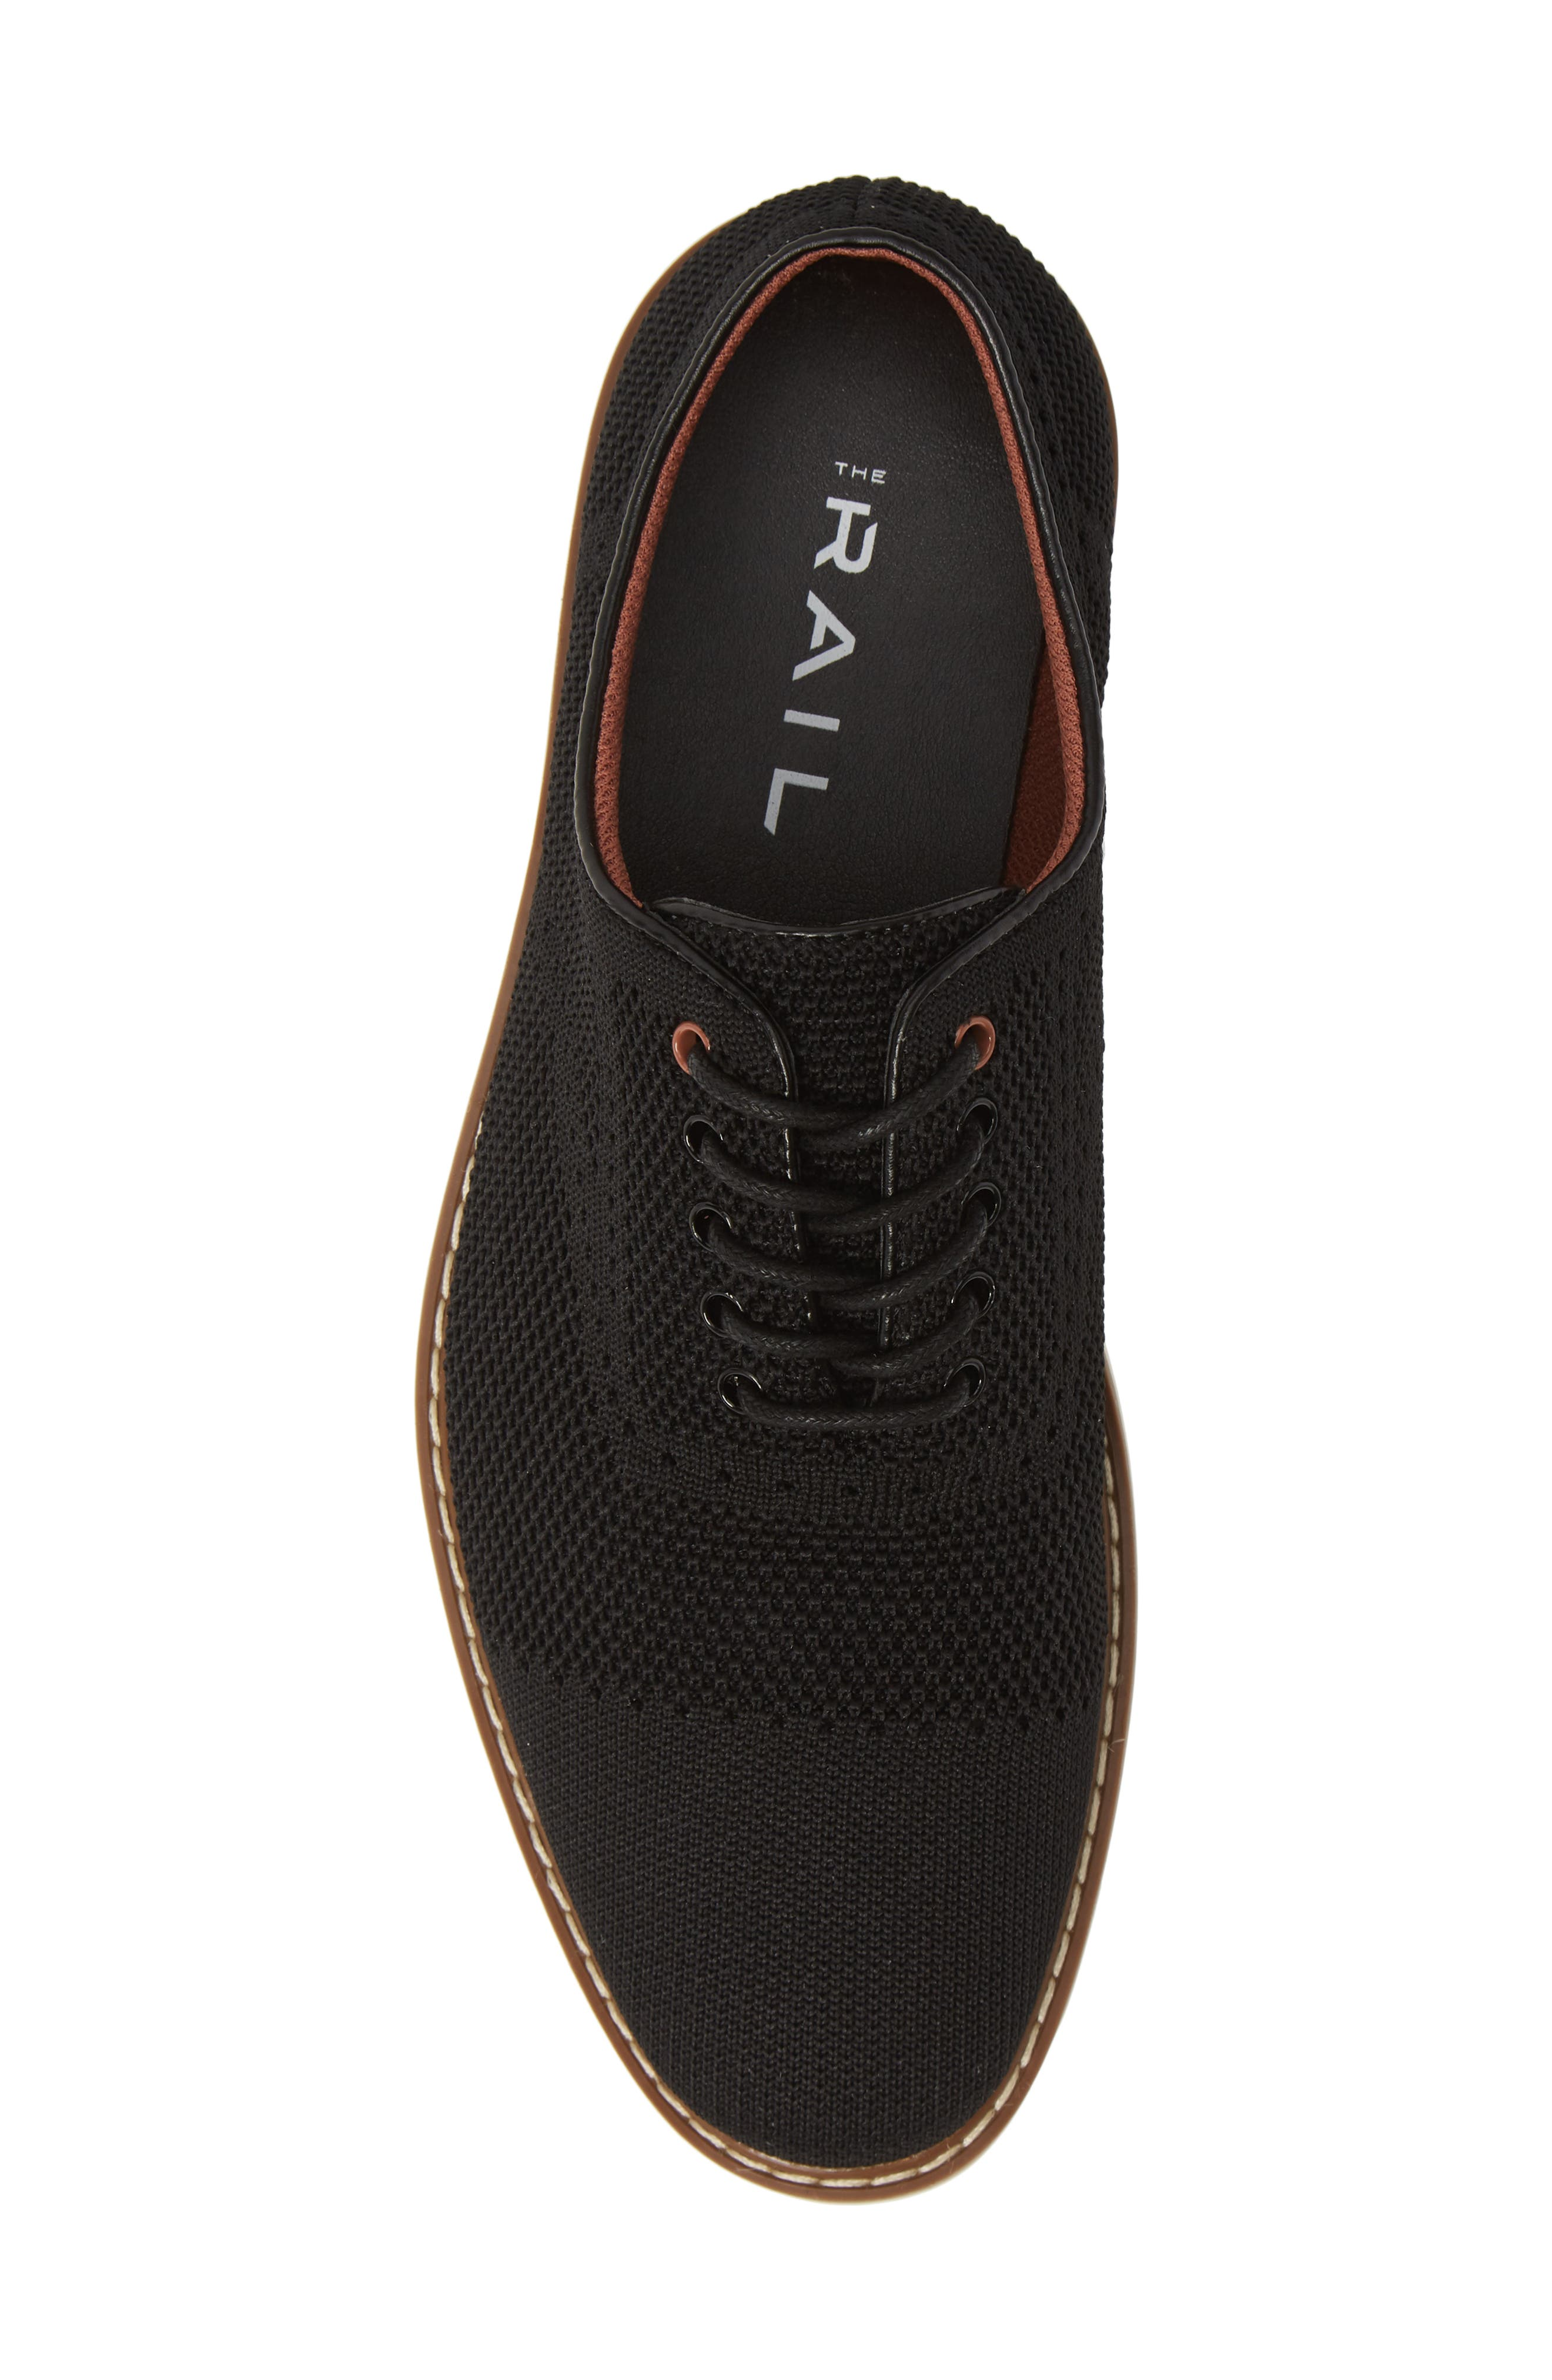 THE RAIL, Jared Plain Toe Oxford, Alternate thumbnail 5, color, BLACK